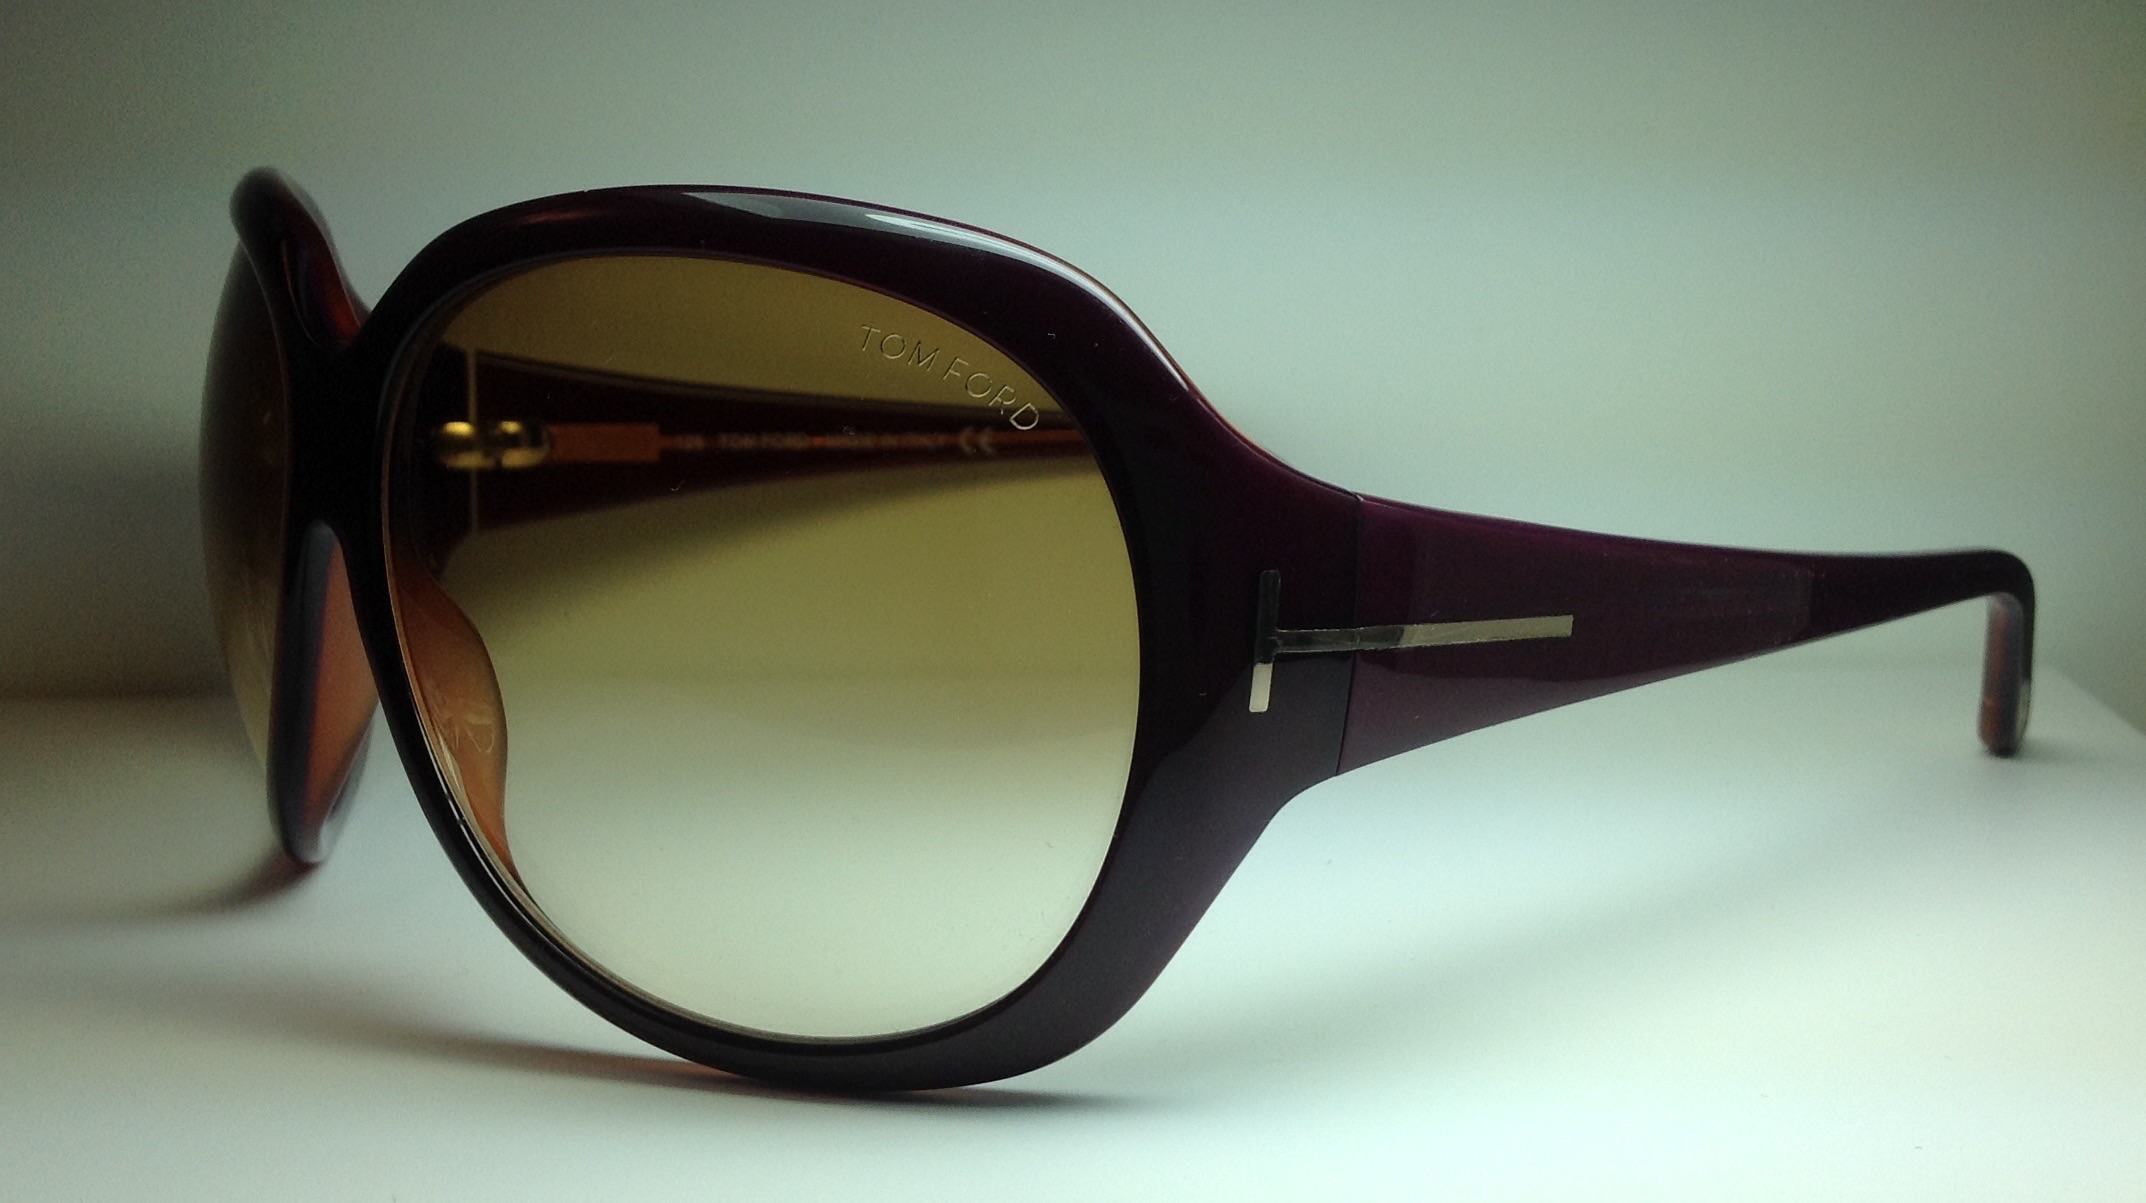 Tom Ford TF065 Sabine 187